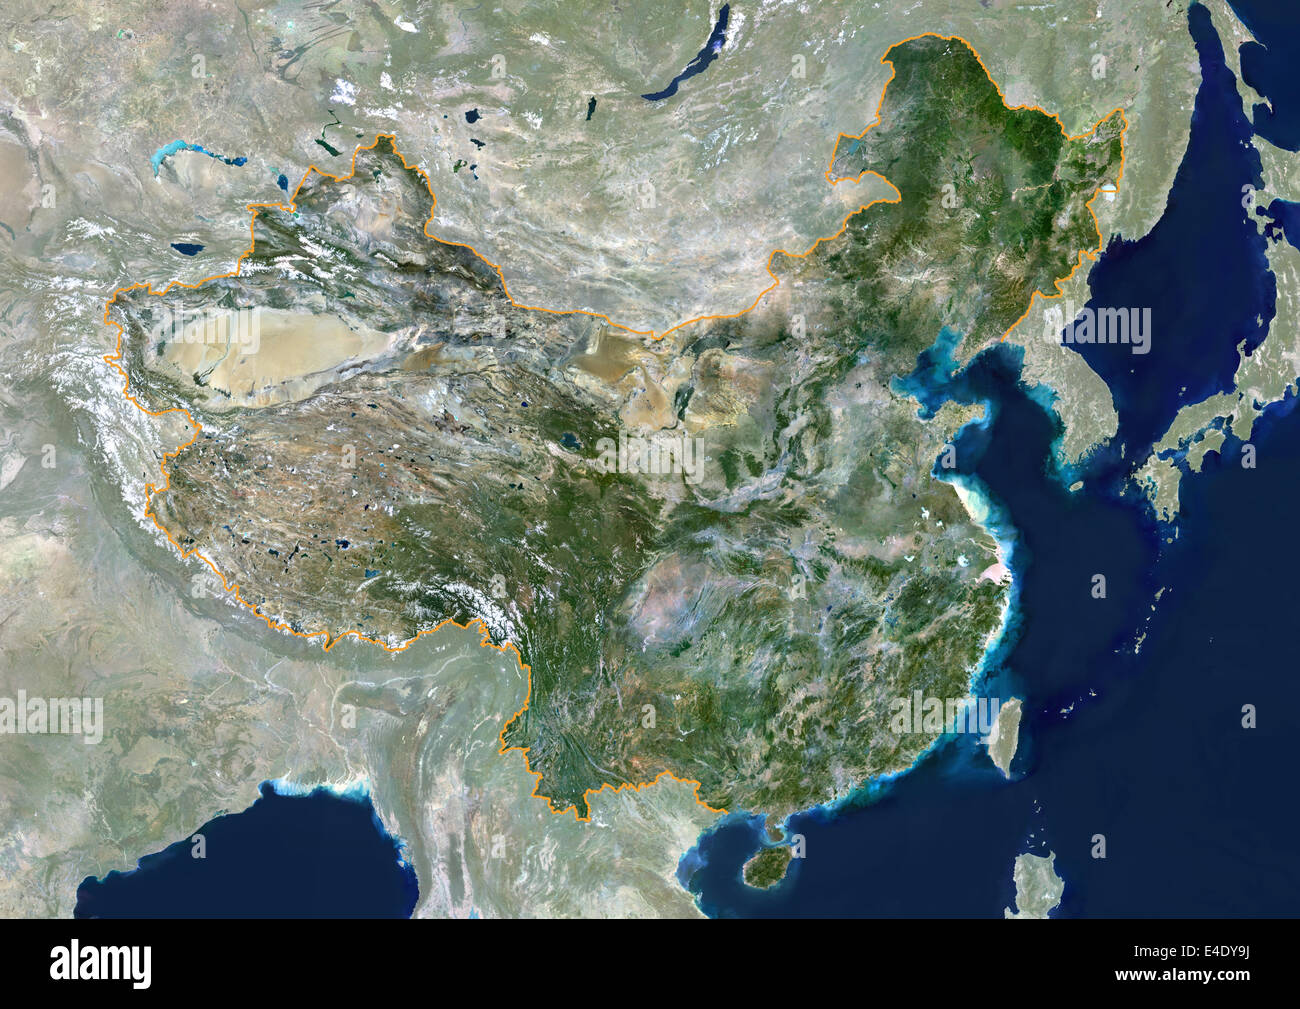 China, True Colour Satellite Image With Mask And Border. People's Republic of China, true colour satellite image - Stock Image